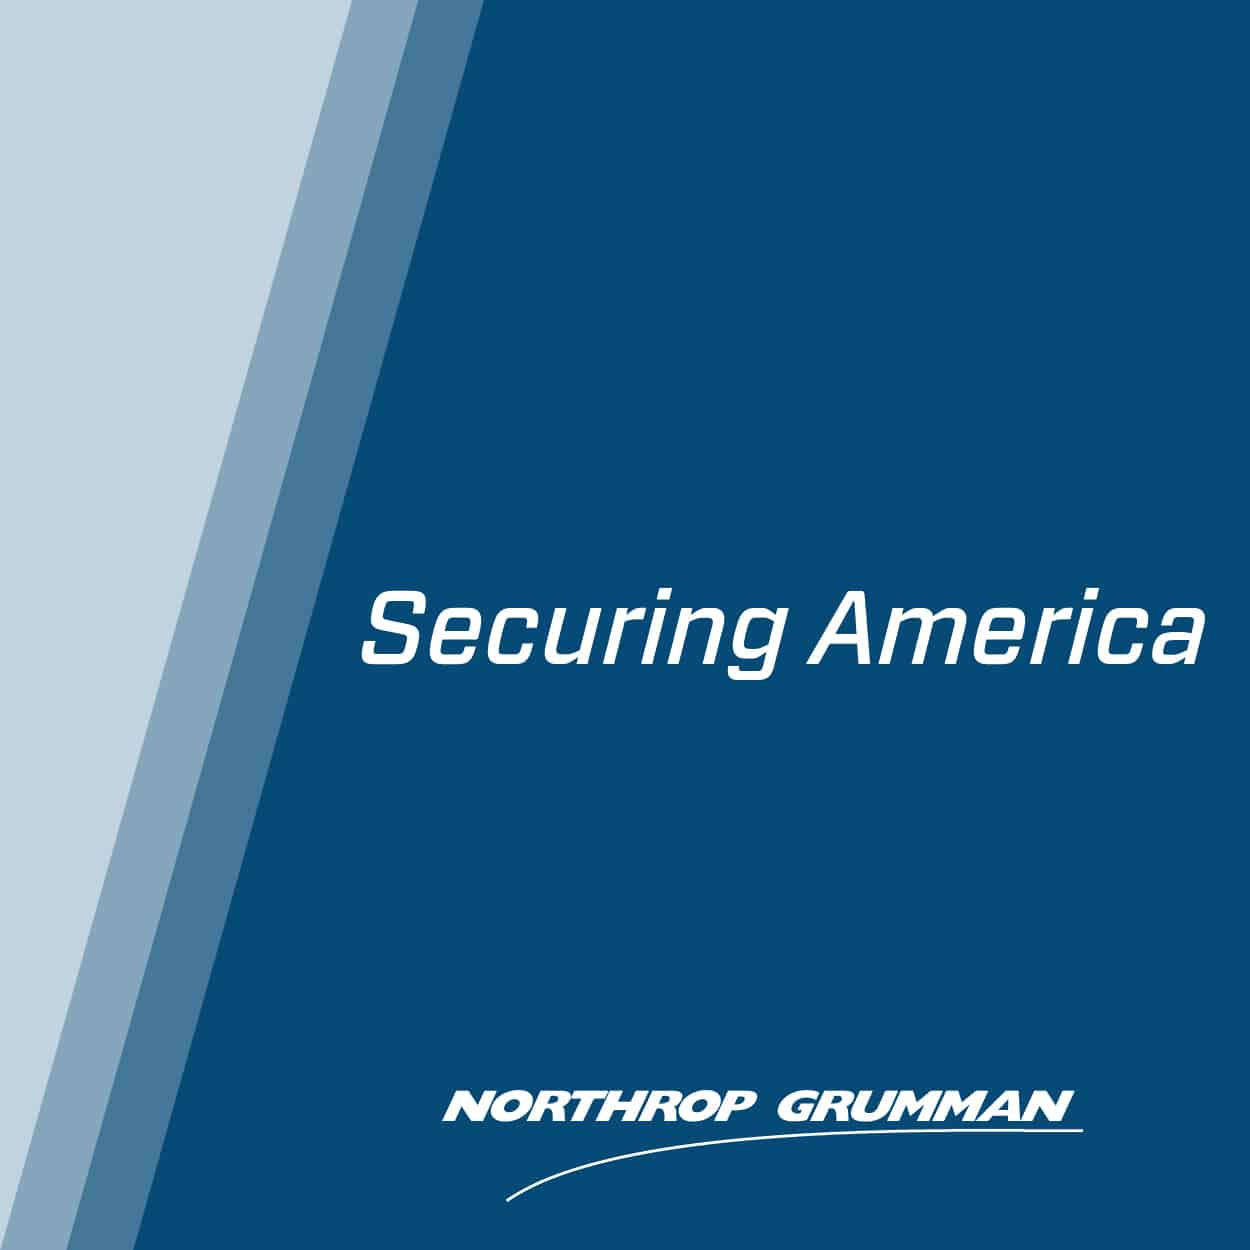 Northrop Grumman - Securing America